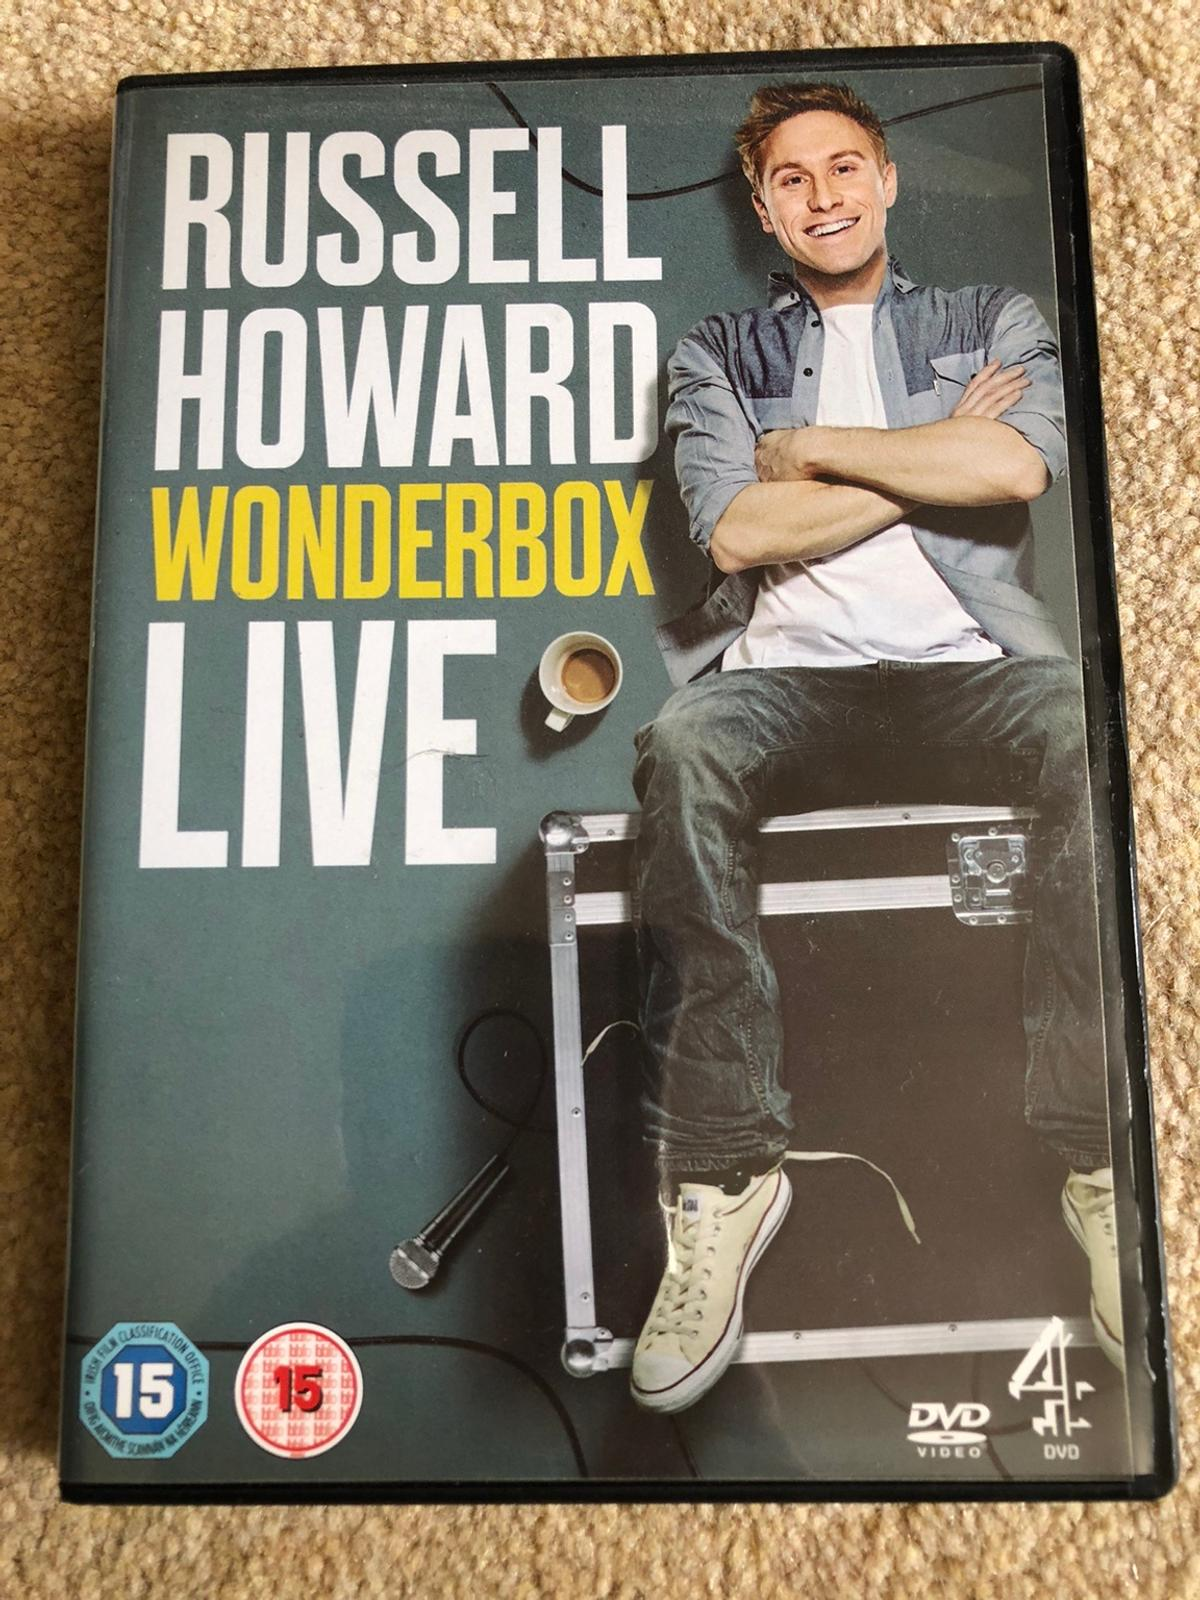 Russell Howard Wonderbox Live Great quality no scratches Rated 15